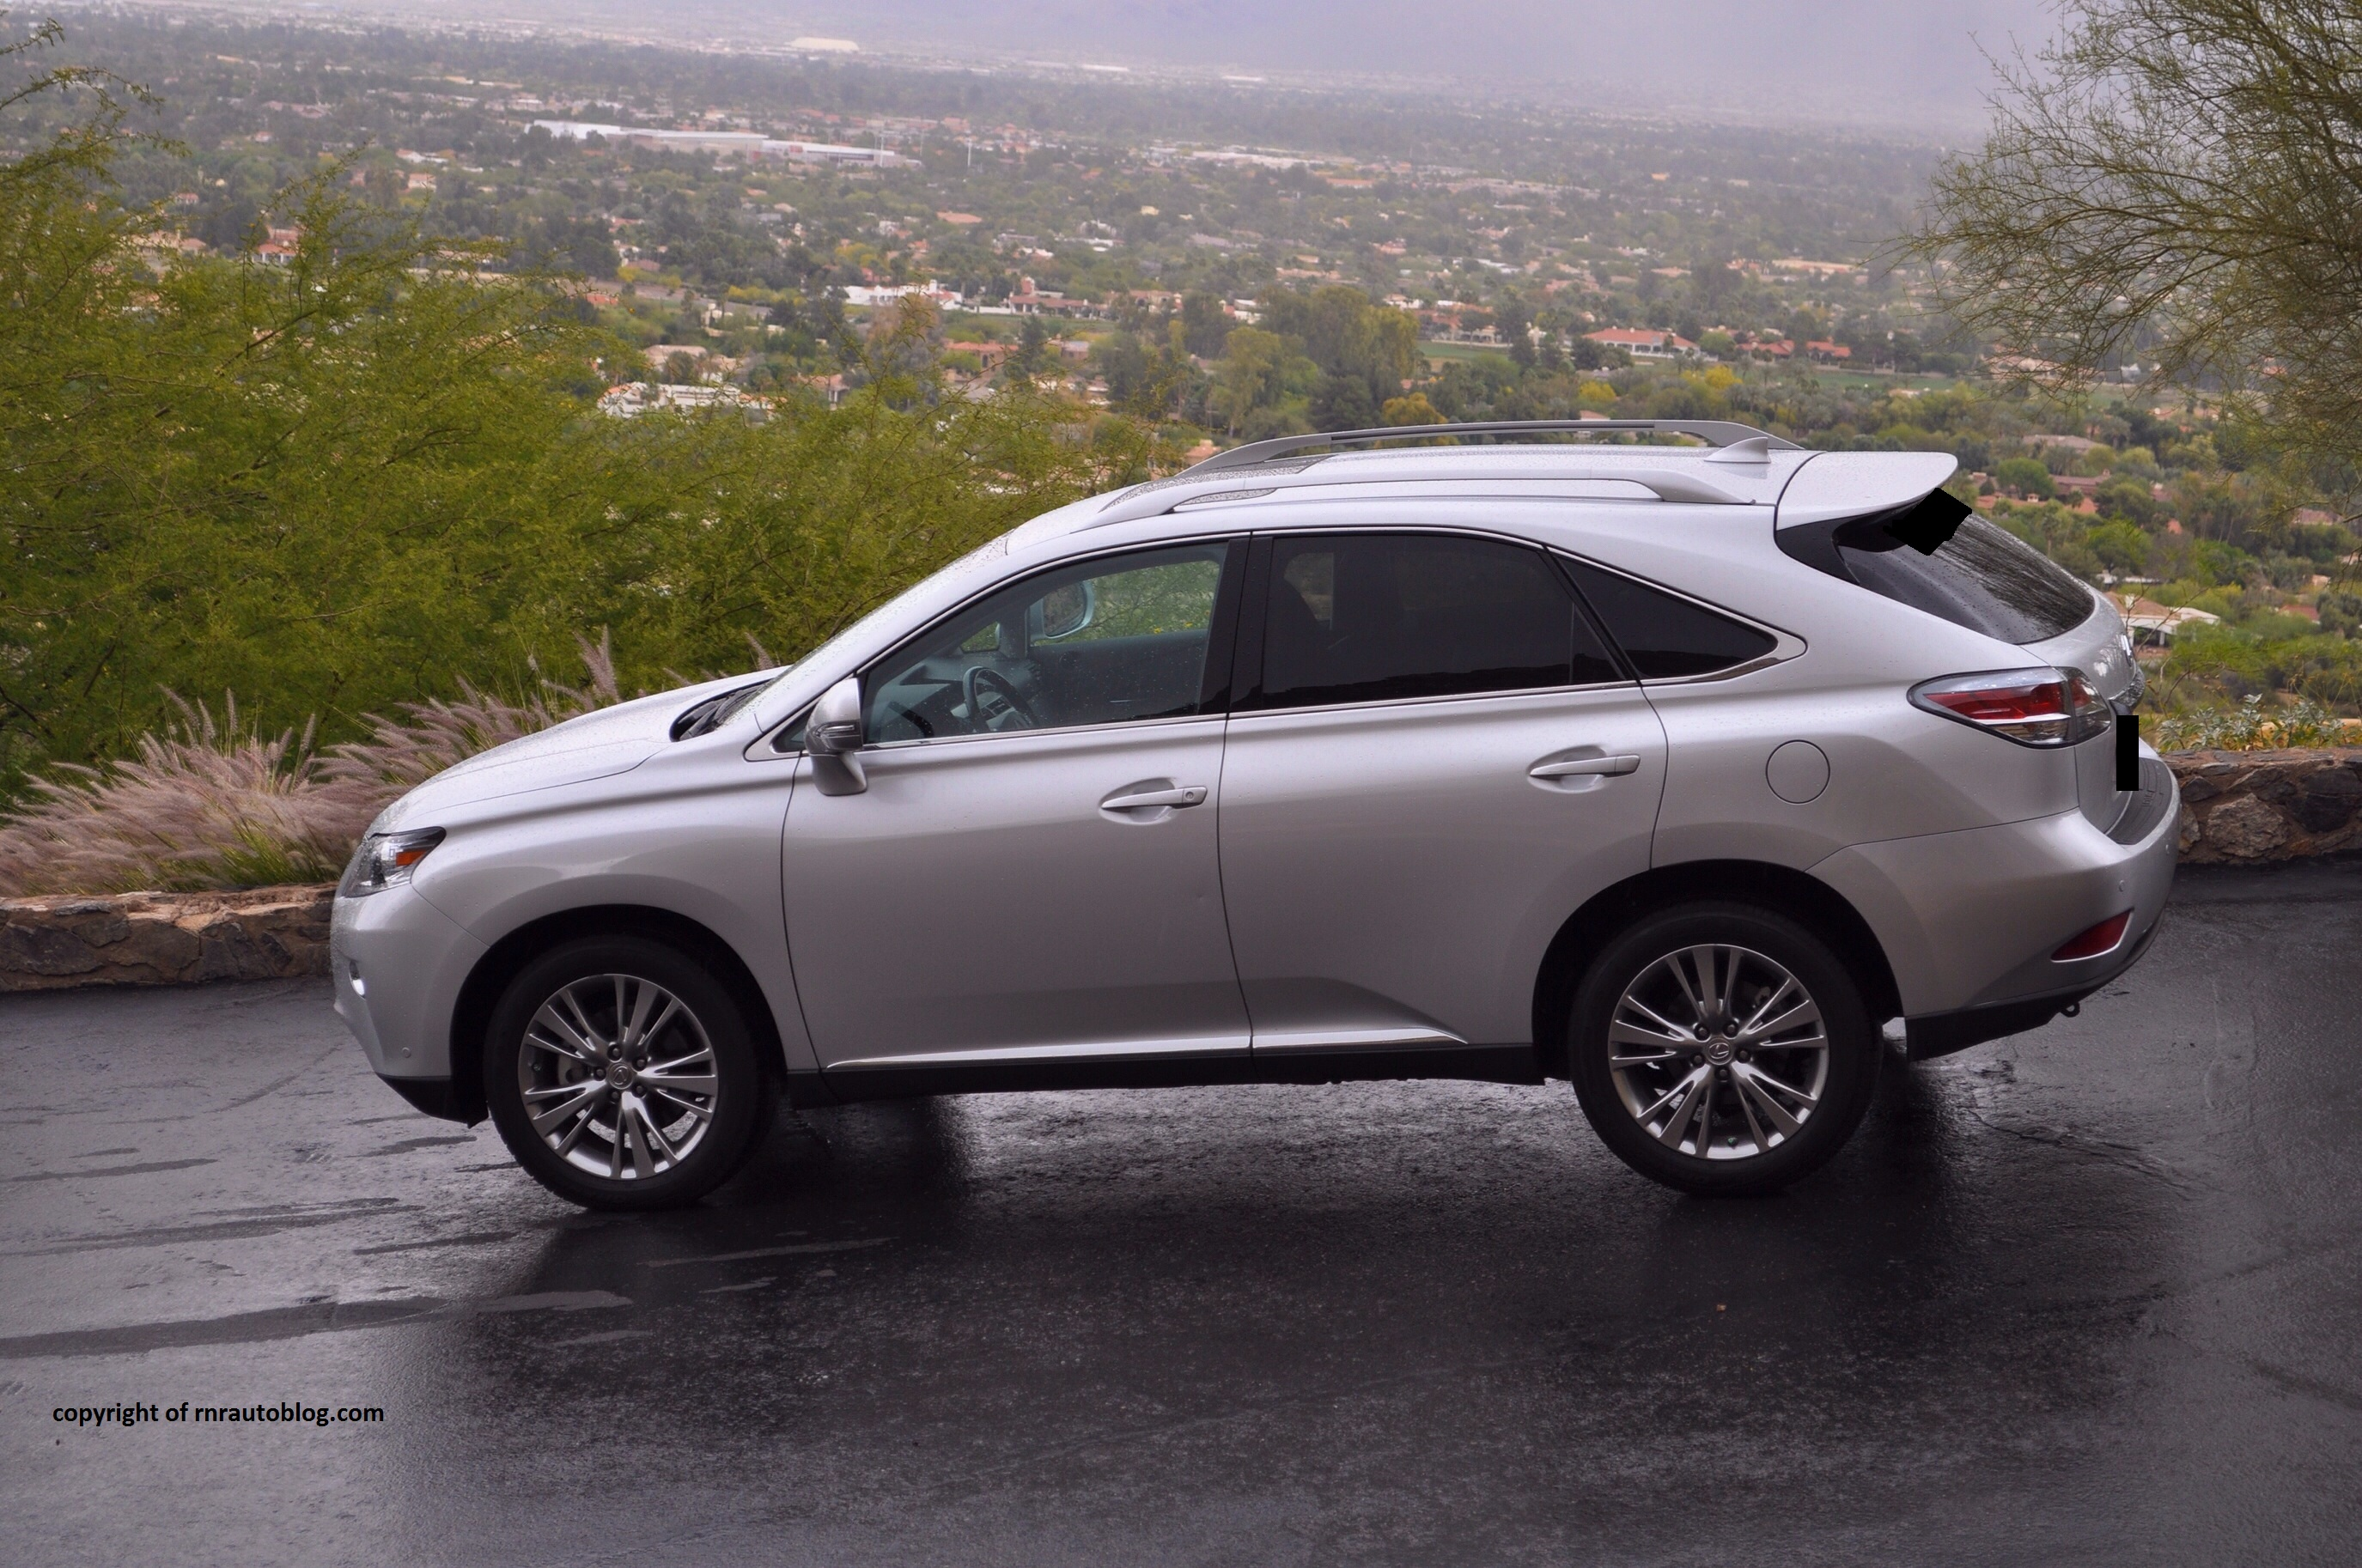 rx lexus news amazing for reviews images sale ratings with msrp